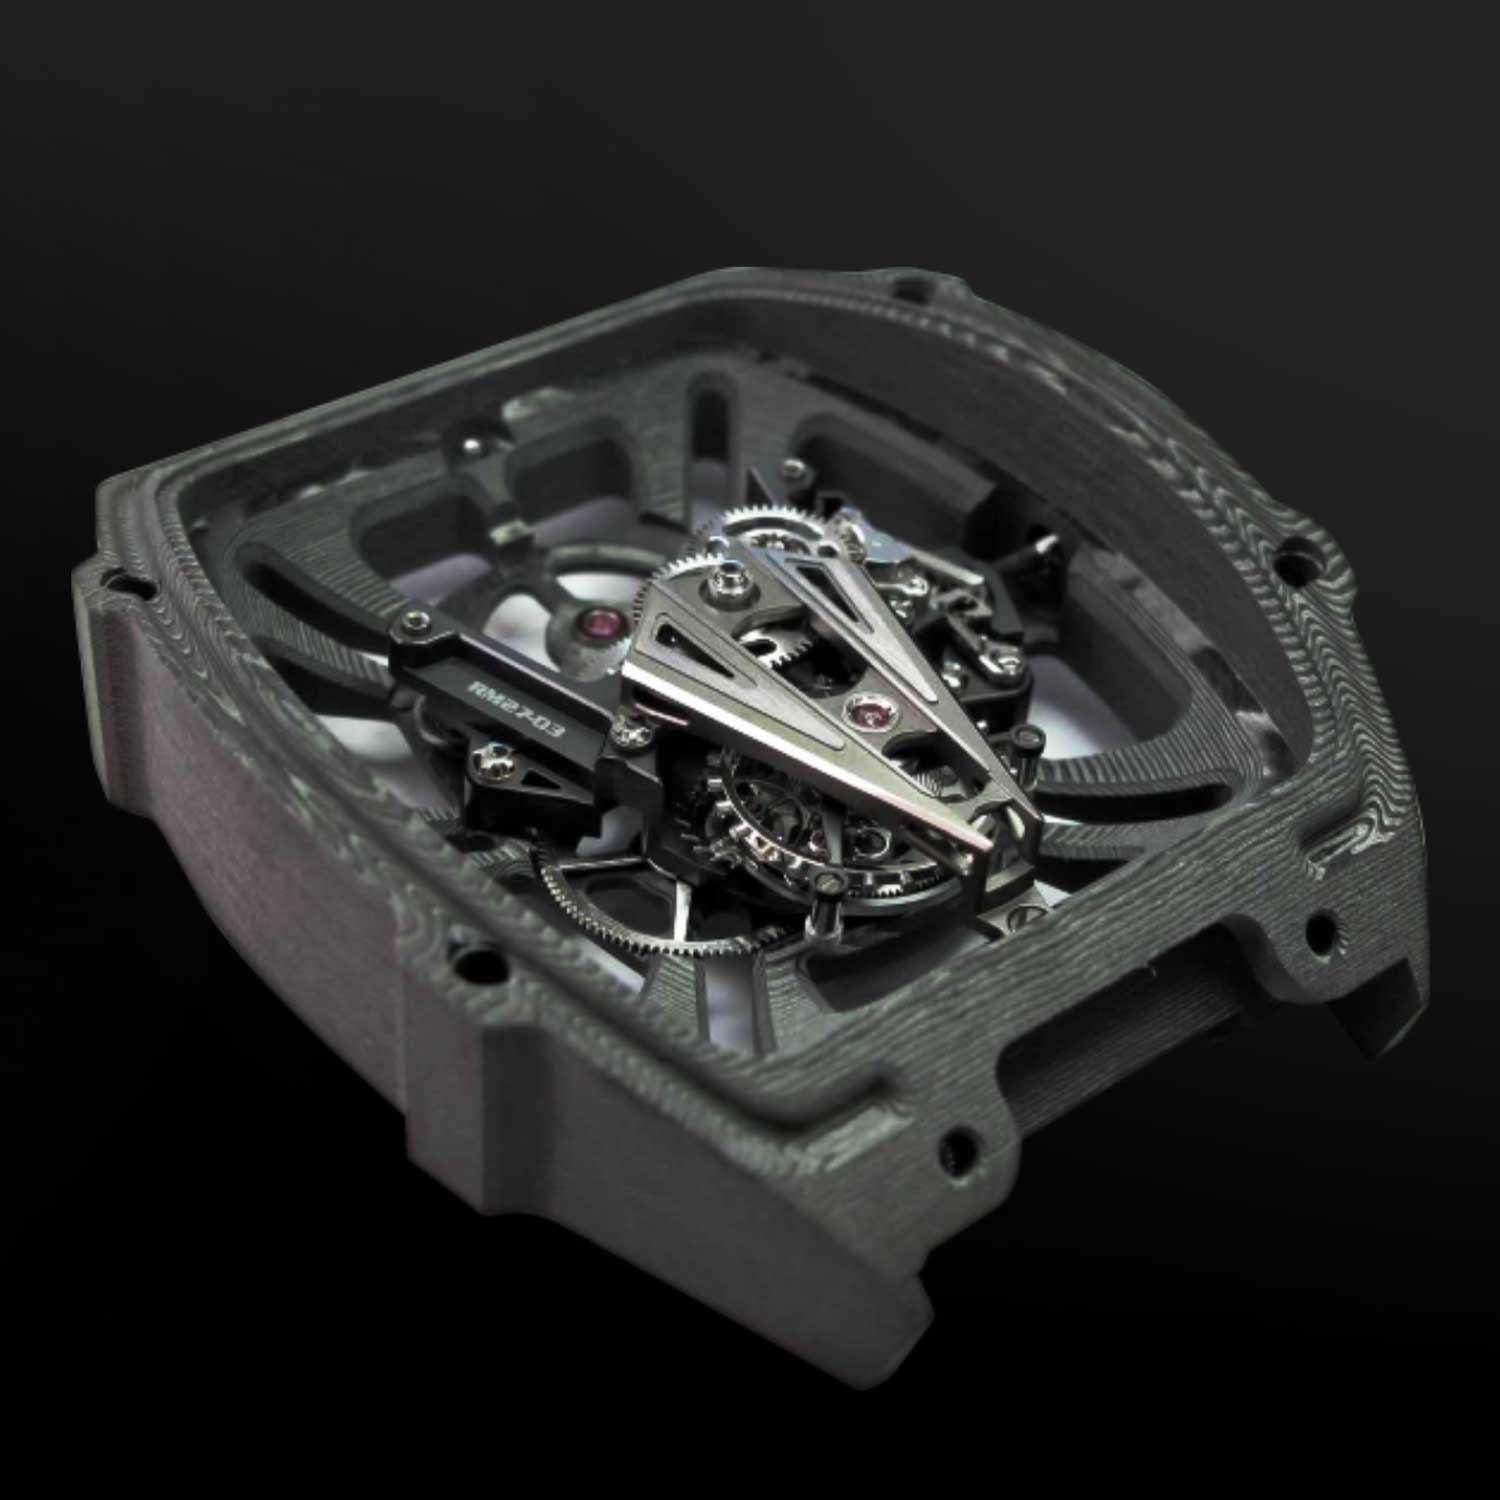 A unibody baseplate in Carbon TPT®, grade 5 titanium bridges and strategic reinforcements at the heart of the calibre all contribute to the rigidity of the RM 27-03, enabling it to withstand impacts of 1000 Gs shock